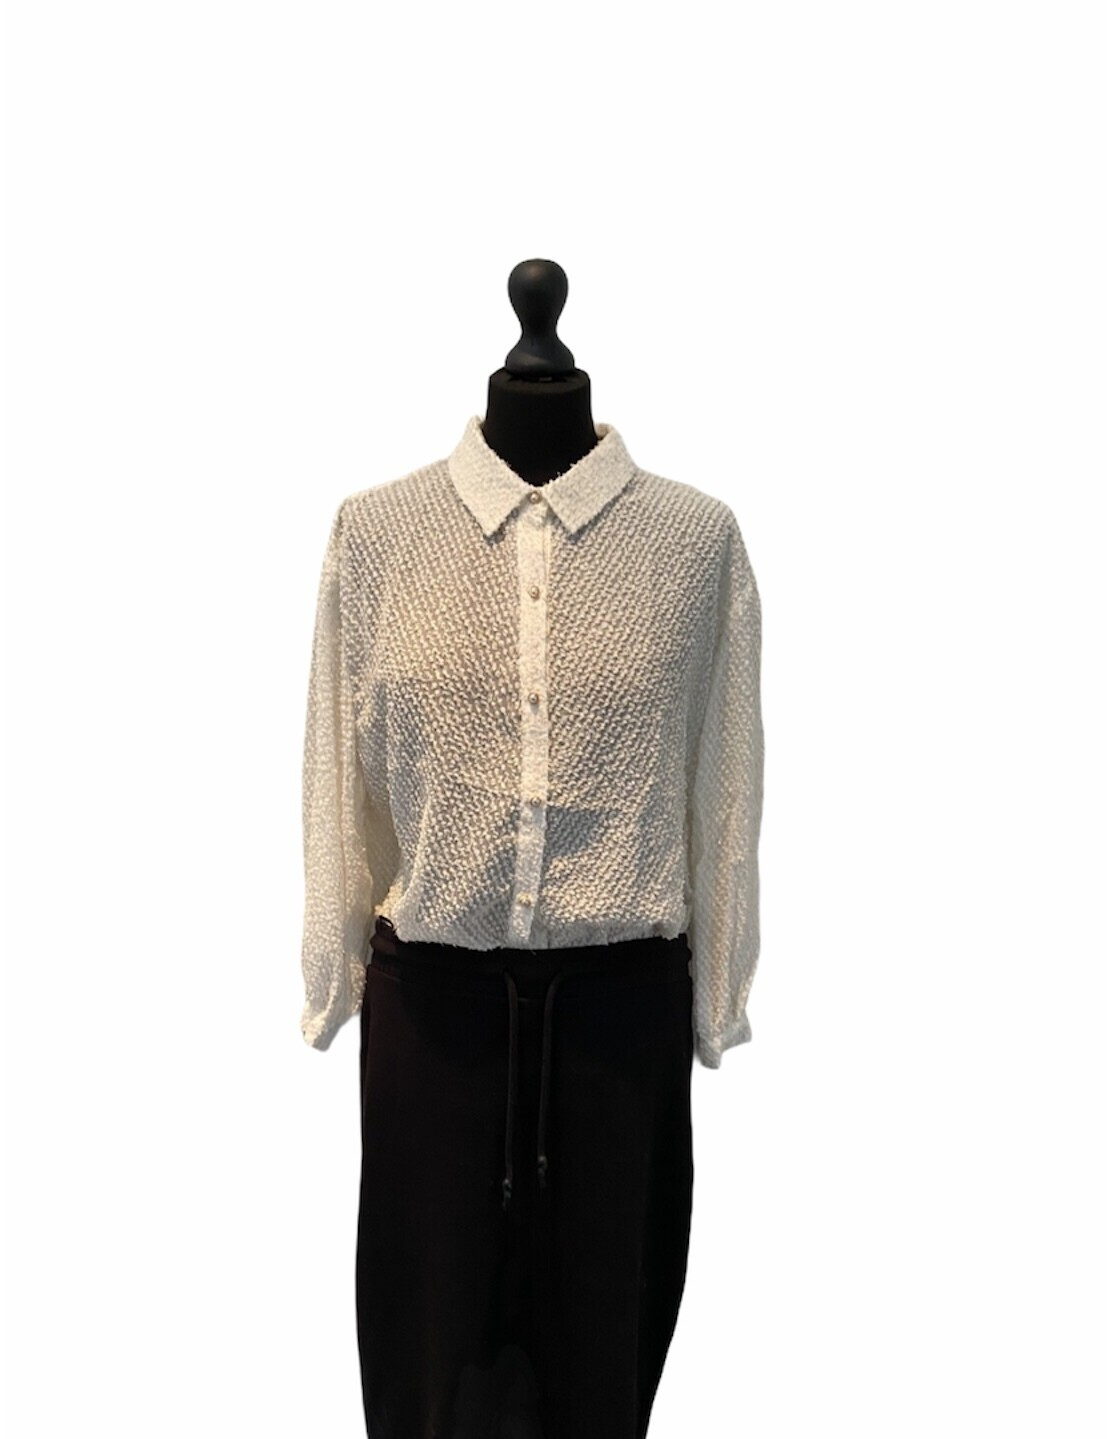 Blouse - LINDE - wit/gouden draad